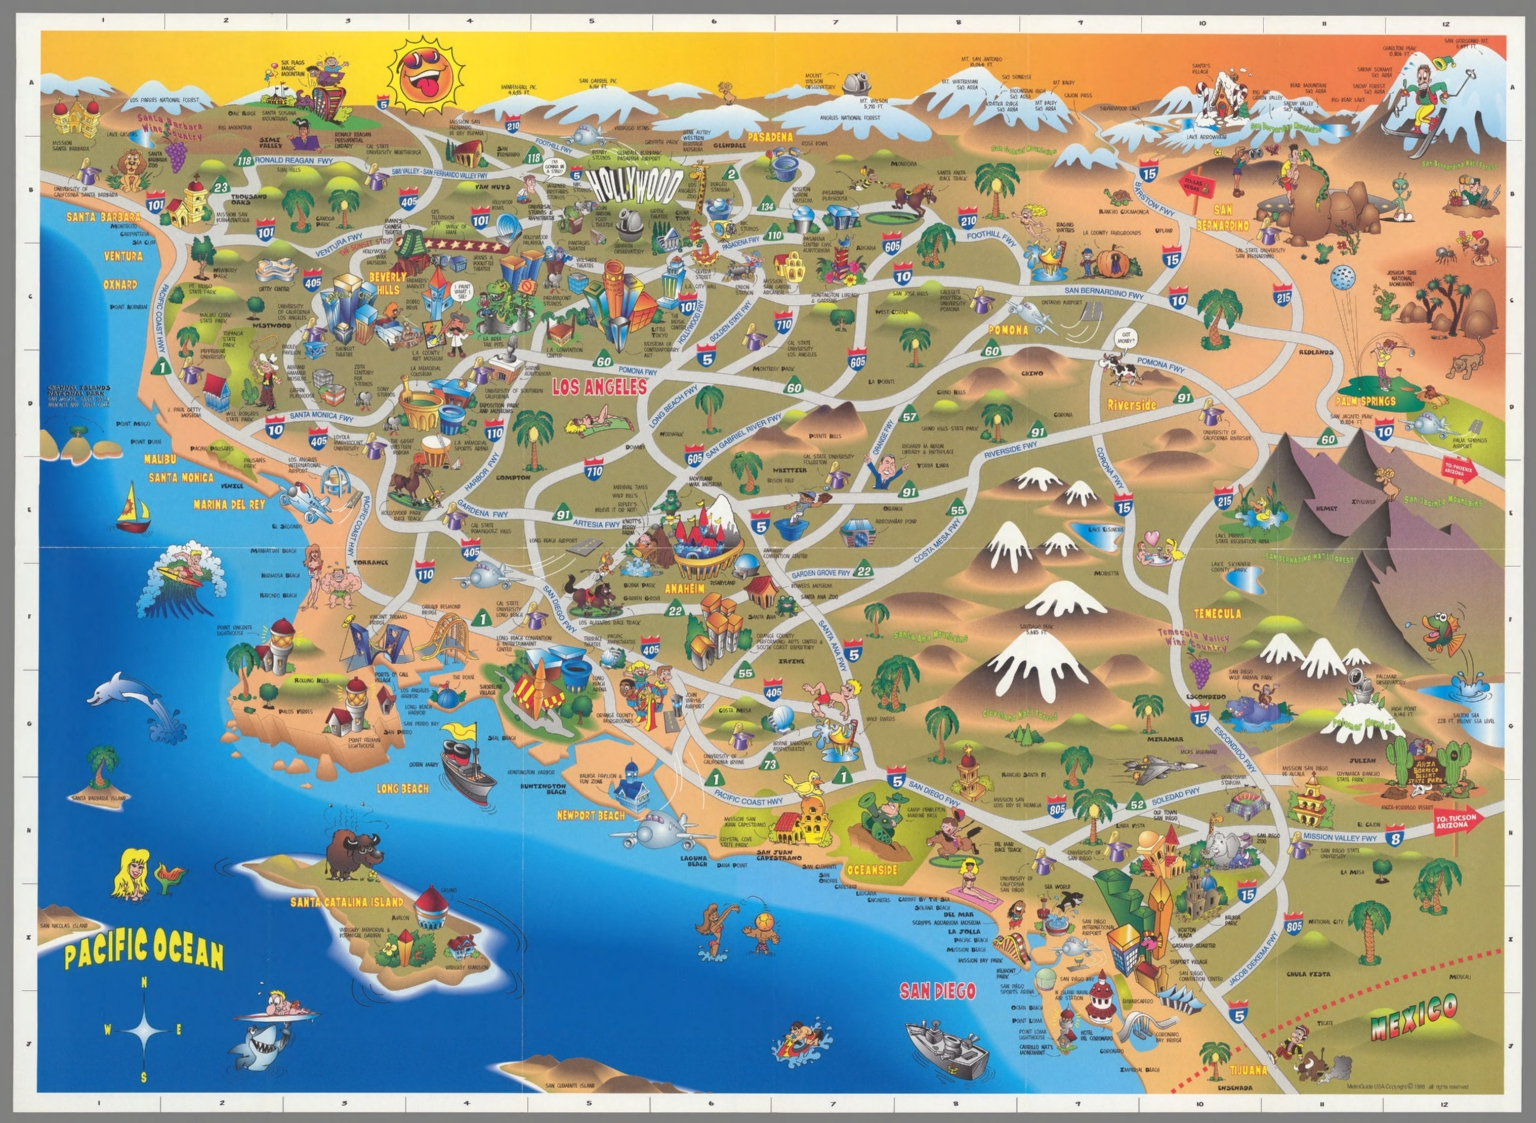 This is a picture of Printable Map of Southern California intended for west coast